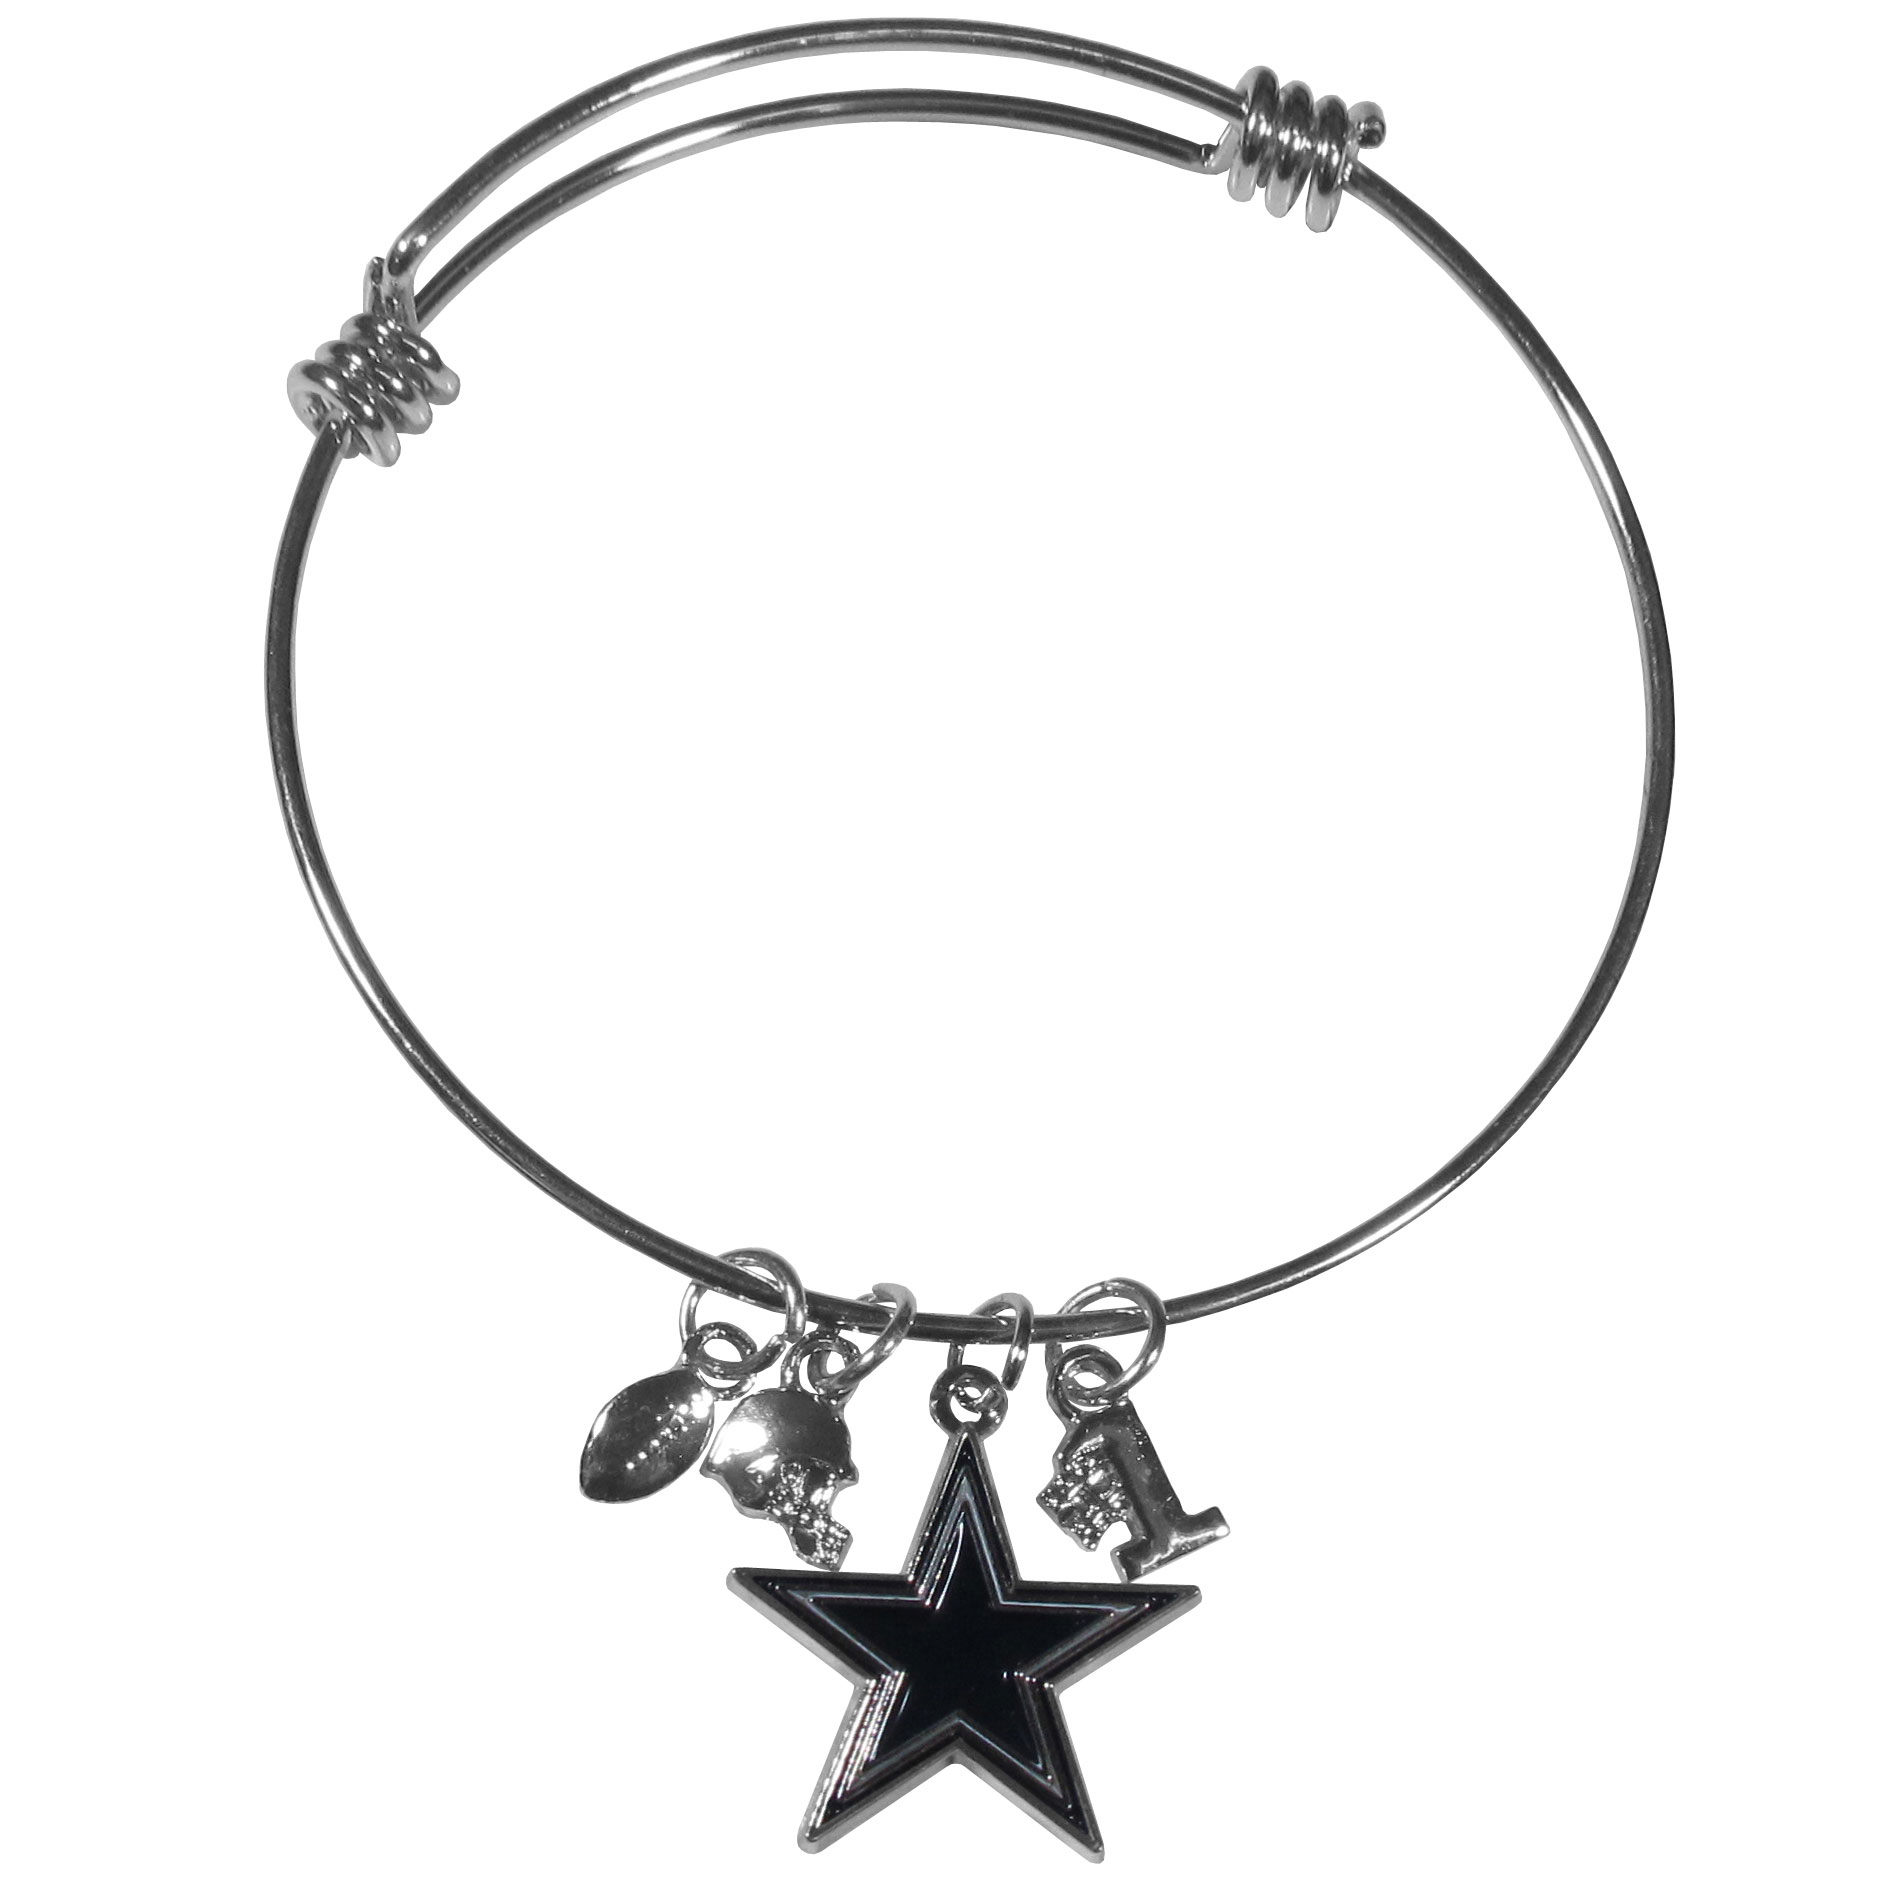 Dallas Cowboys Charm Bangle Bracelet - Adjustable wire bracelets are all the rage and this Dallas Cowboys bracelet matches the popular trend with your beloved team. The bracelet features 4 charms in total, each feature exceptional detail and the team charm has enameled team colors.